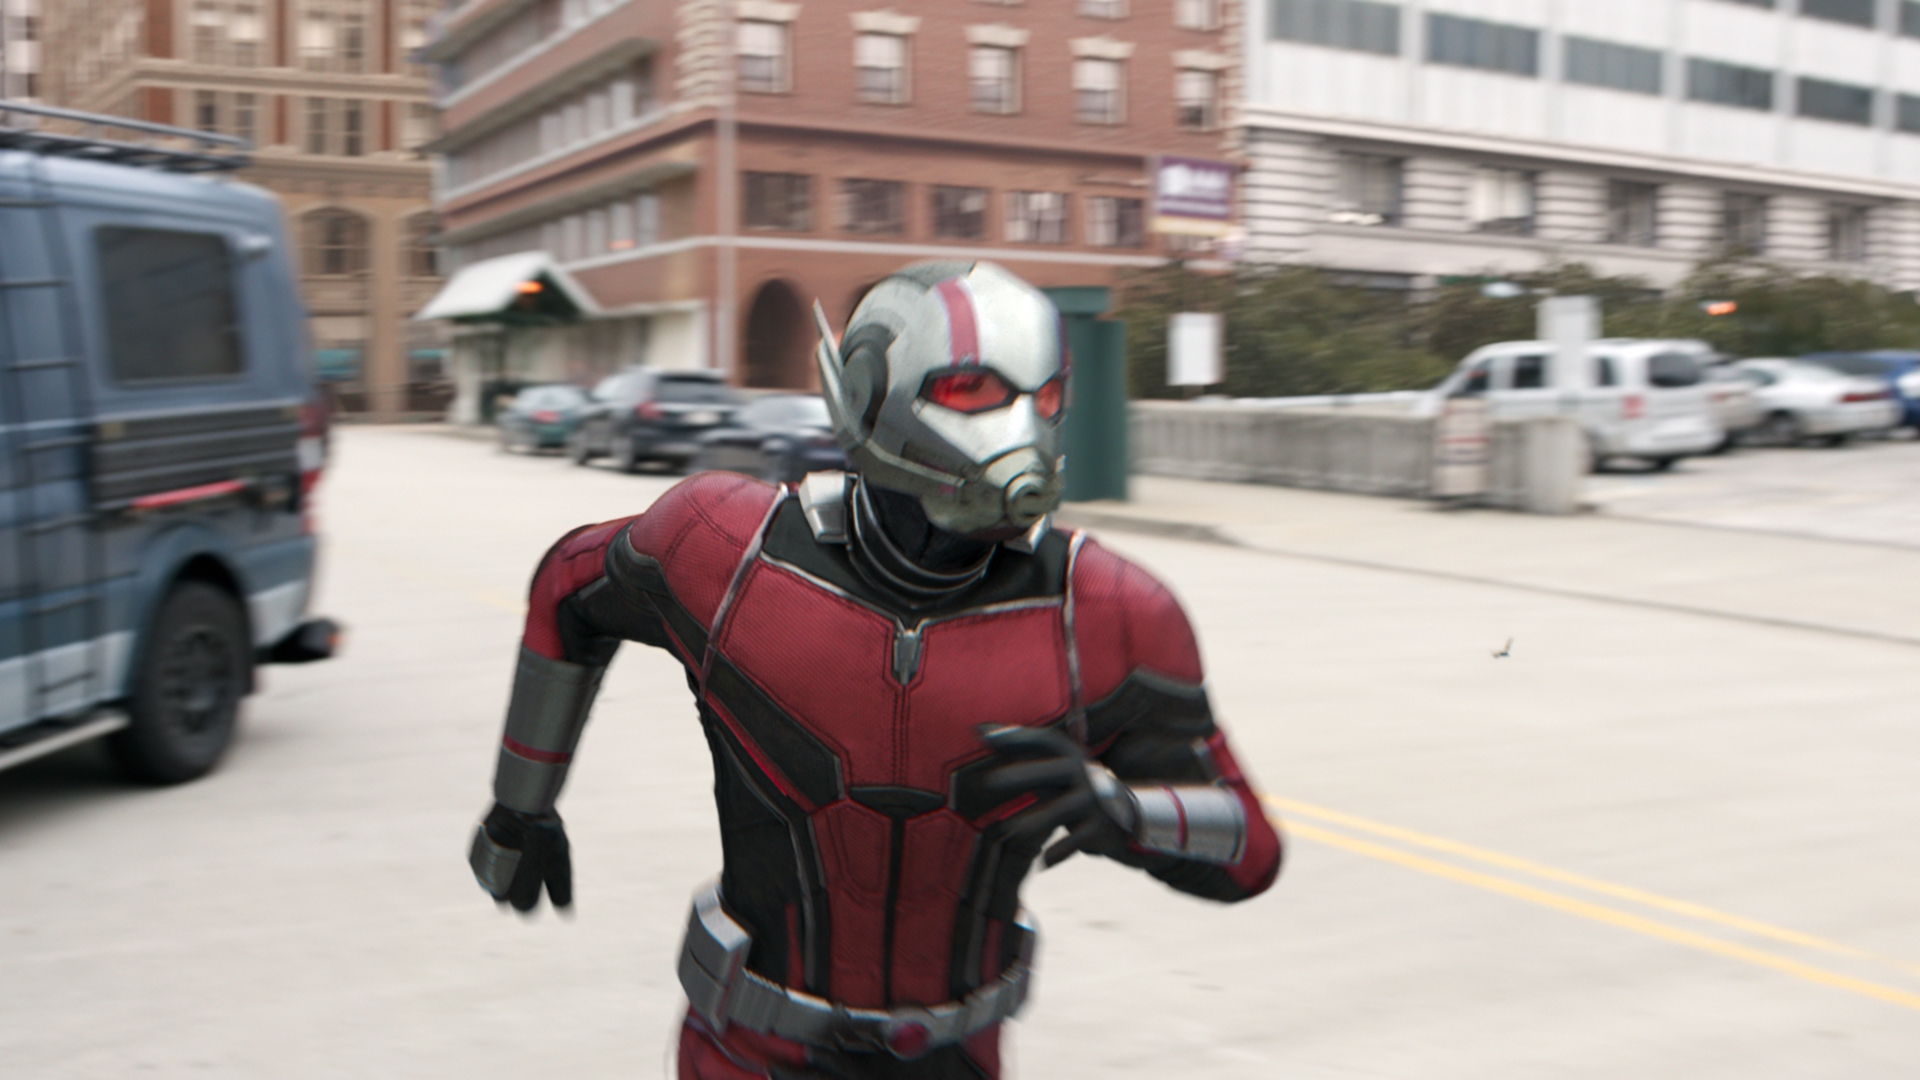 Index of /assets/articles/ant-man-and-the-wasp